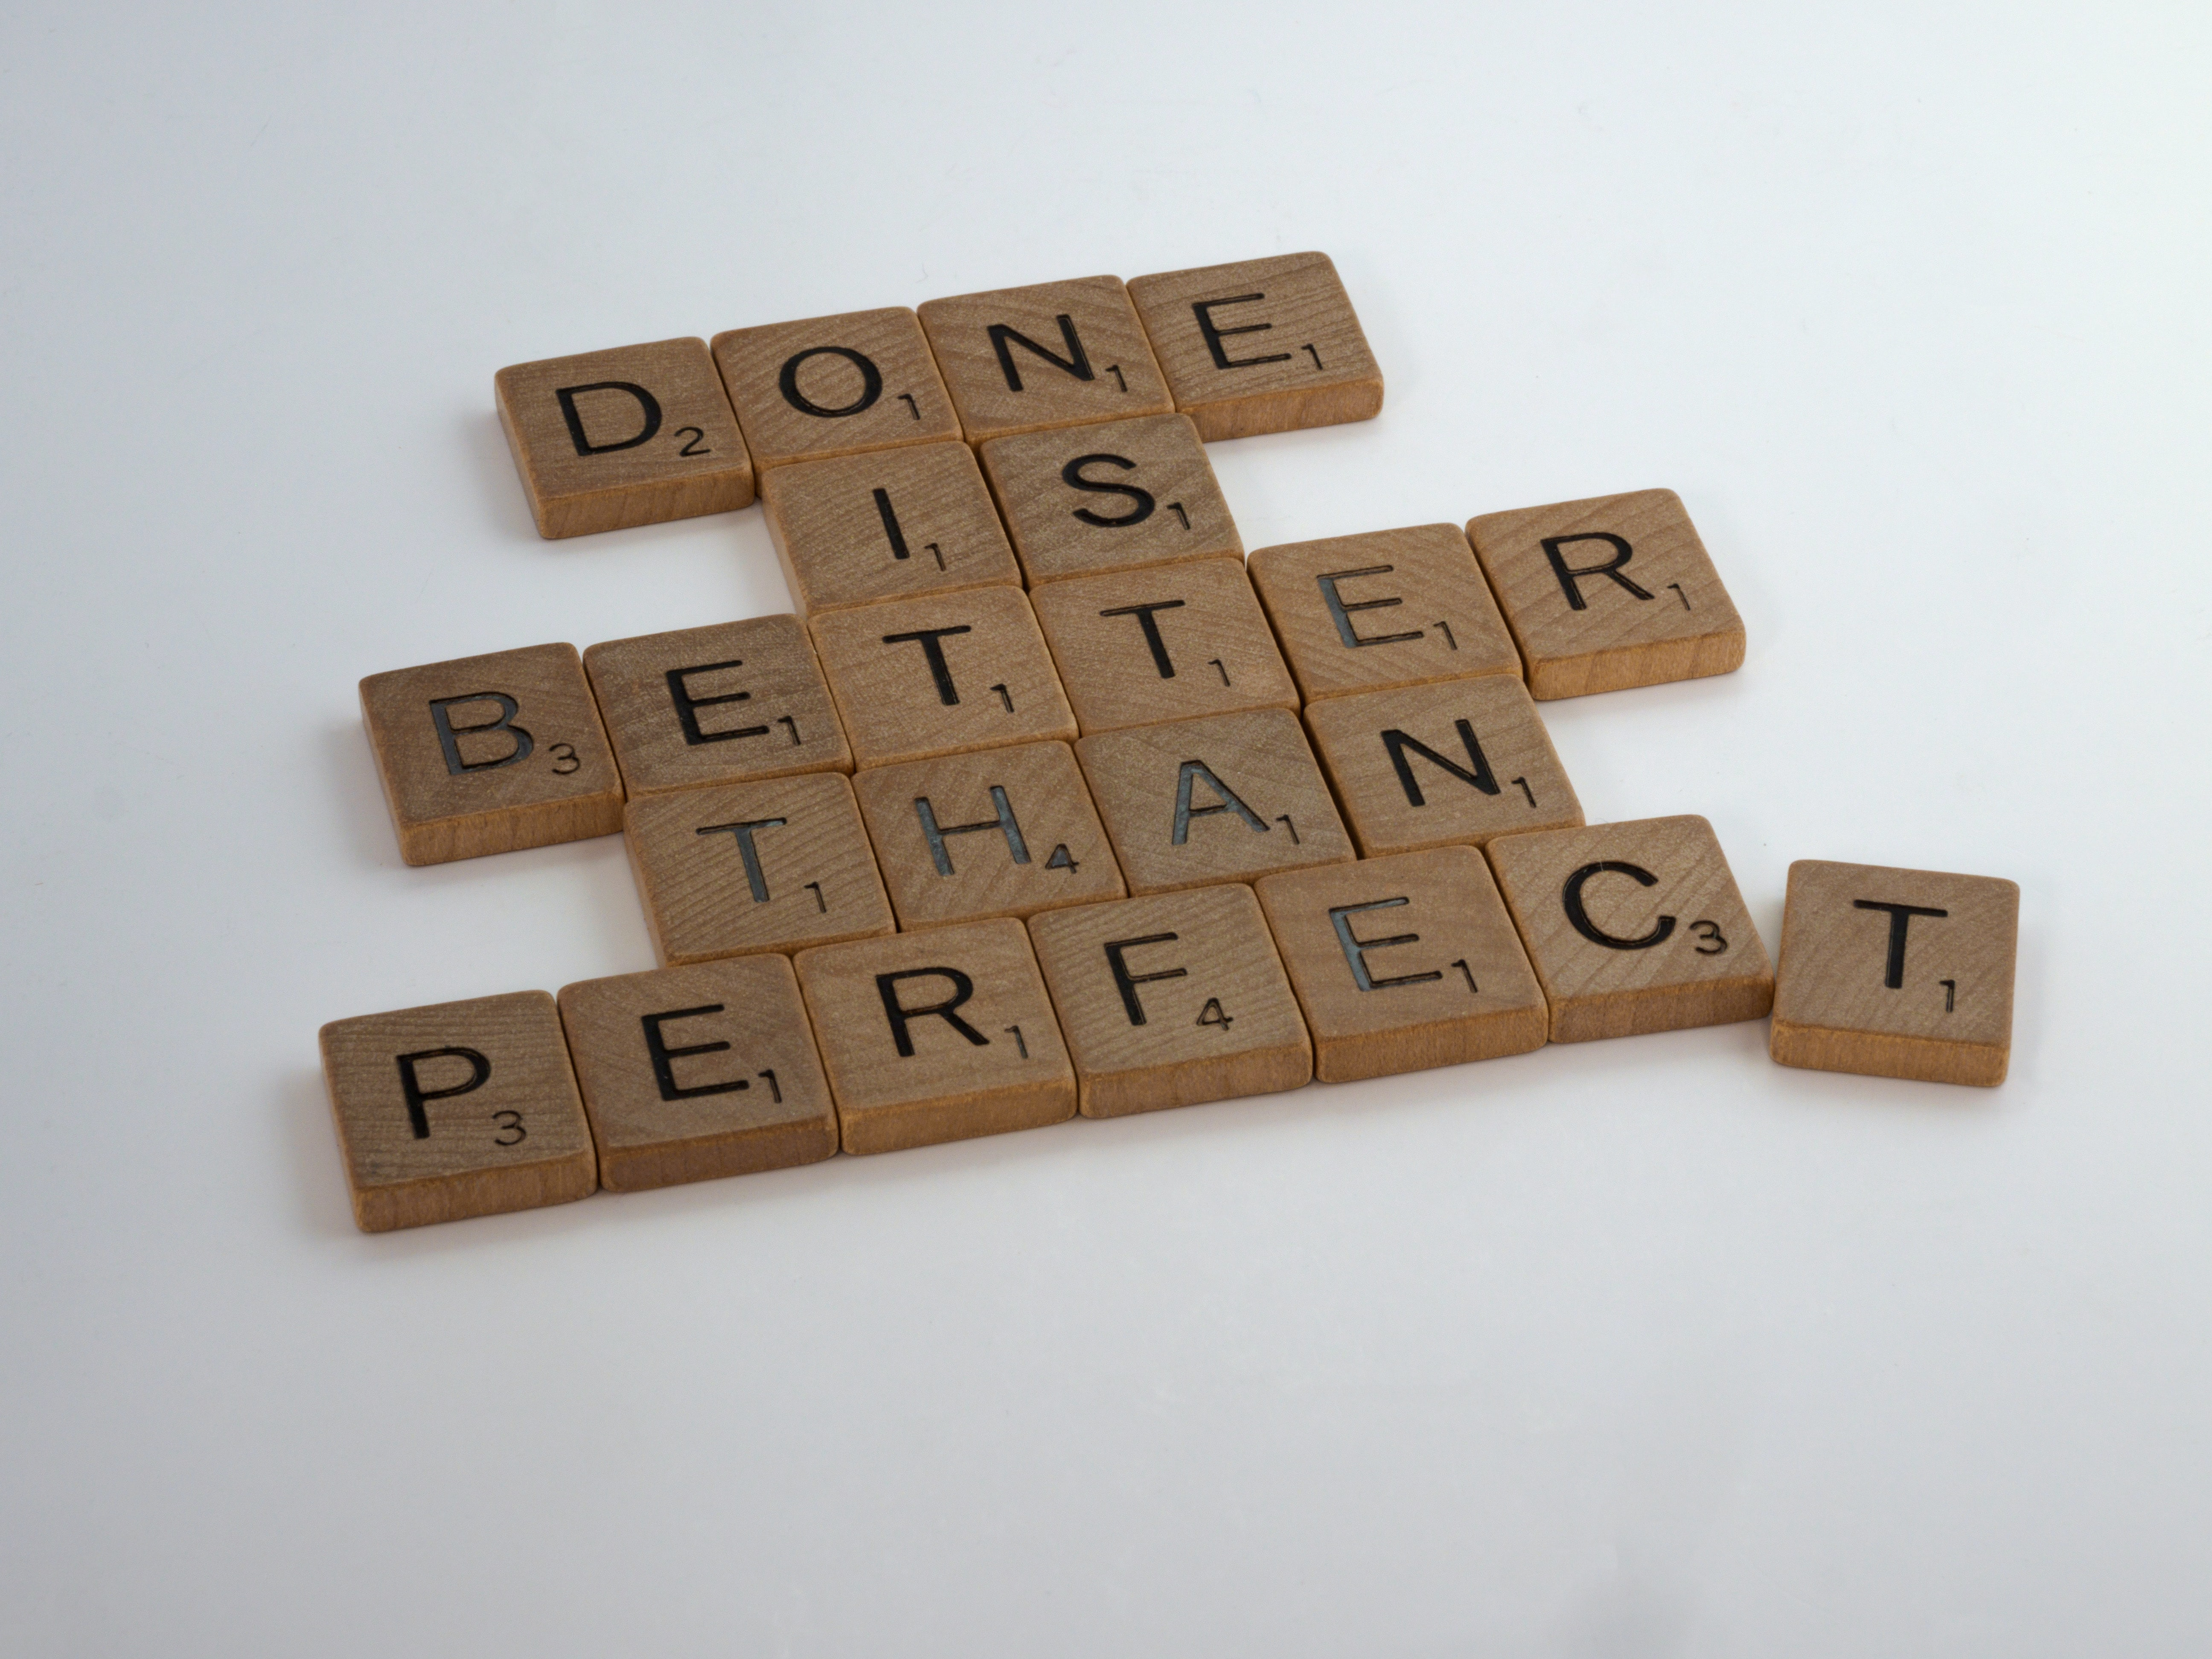 """Photo of scrabble tiles arranged to say """"Done is better than perfect"""""""